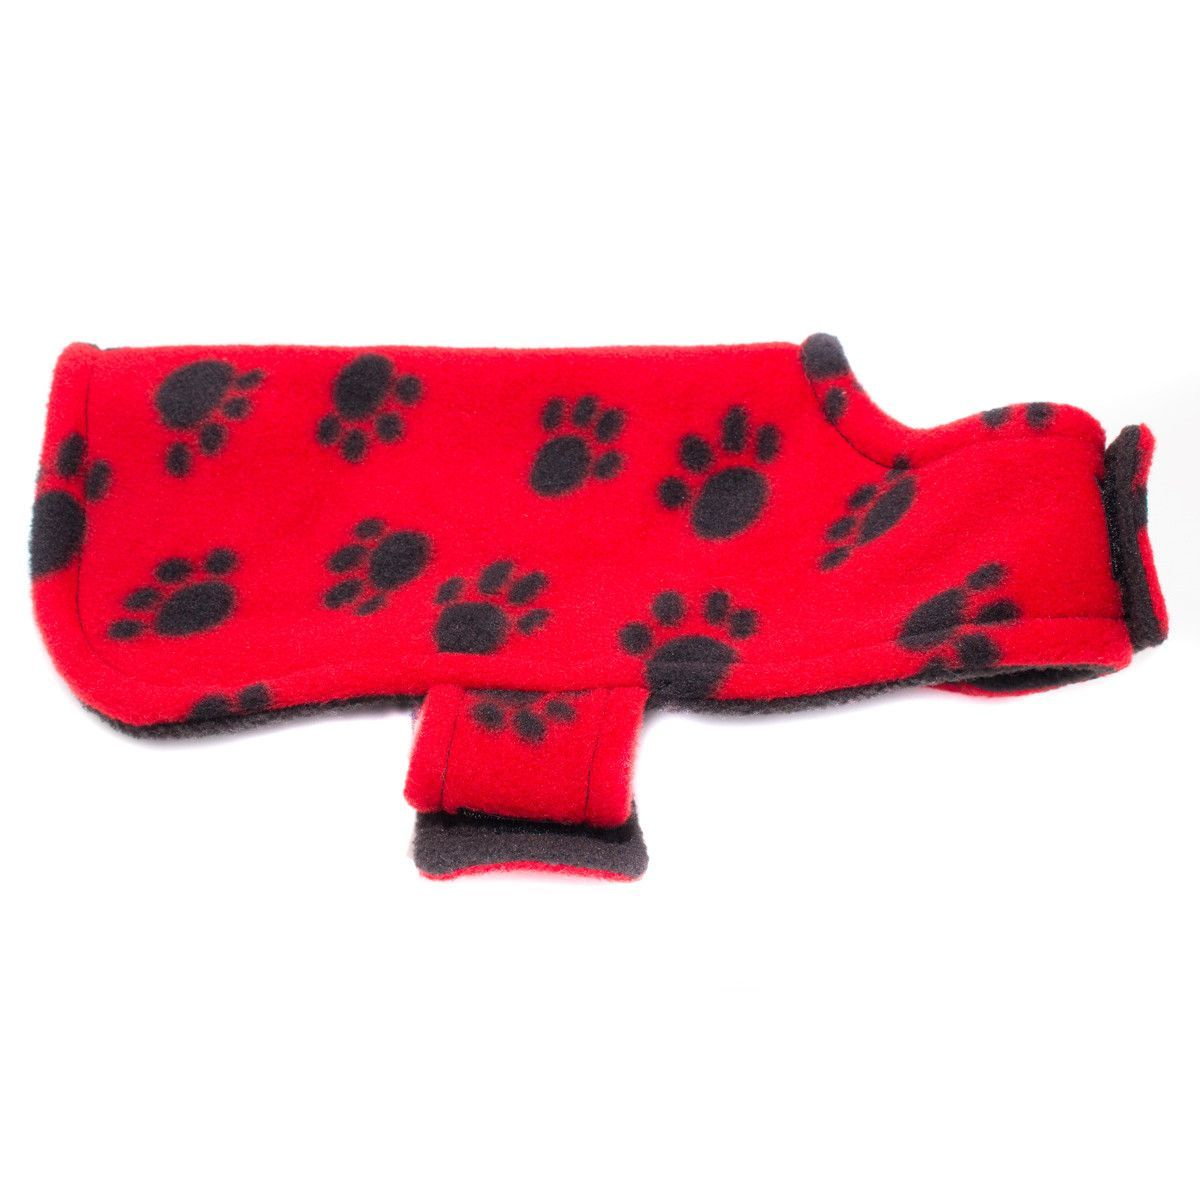 Creative Works Red Paw Fleece Dog Coat